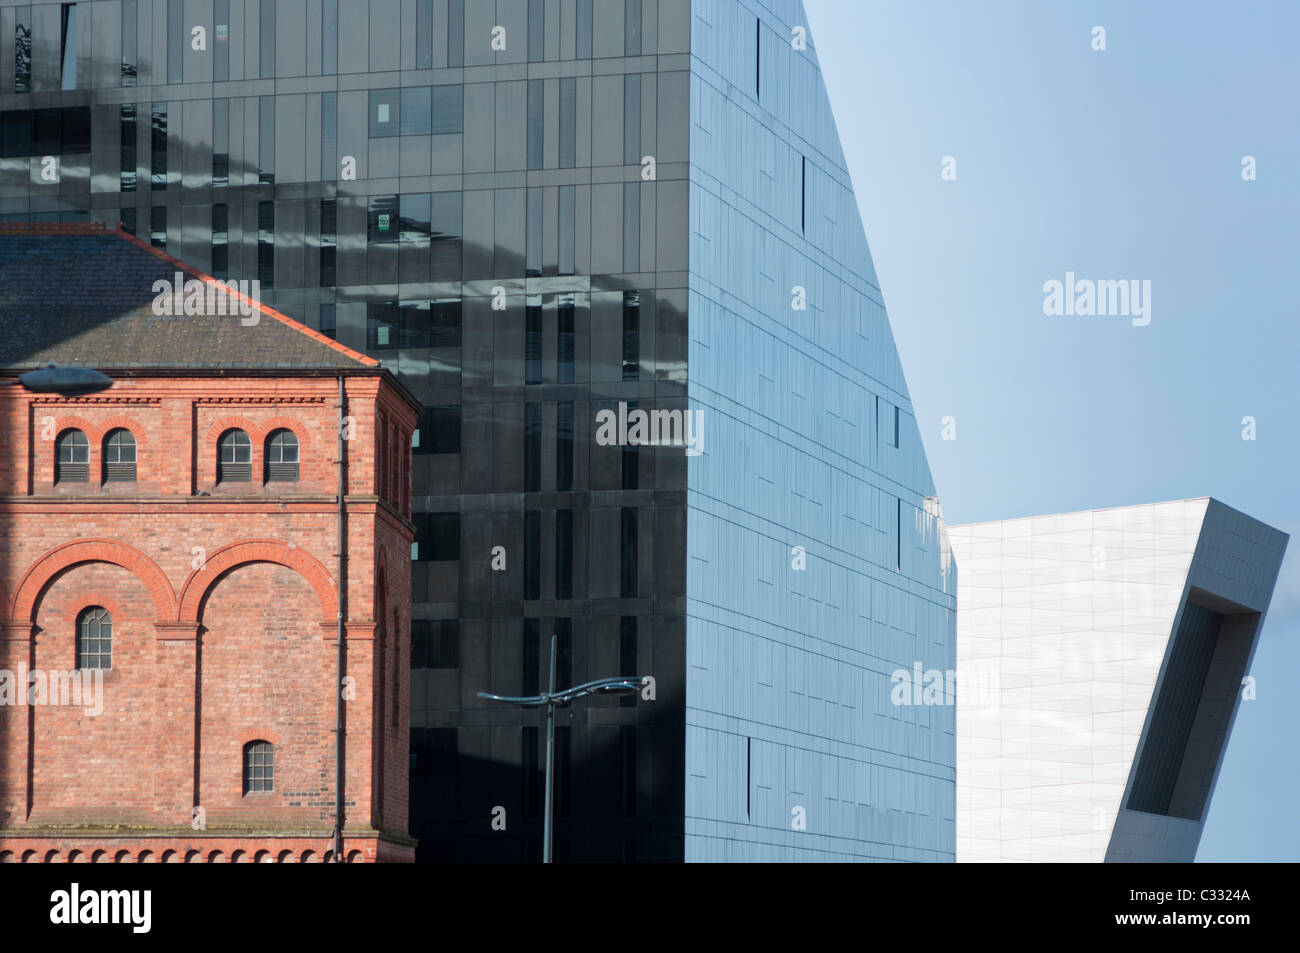 Abstract architecture - old contrasting with the new Mann Island development, in Liverpool. England. - Stock Image